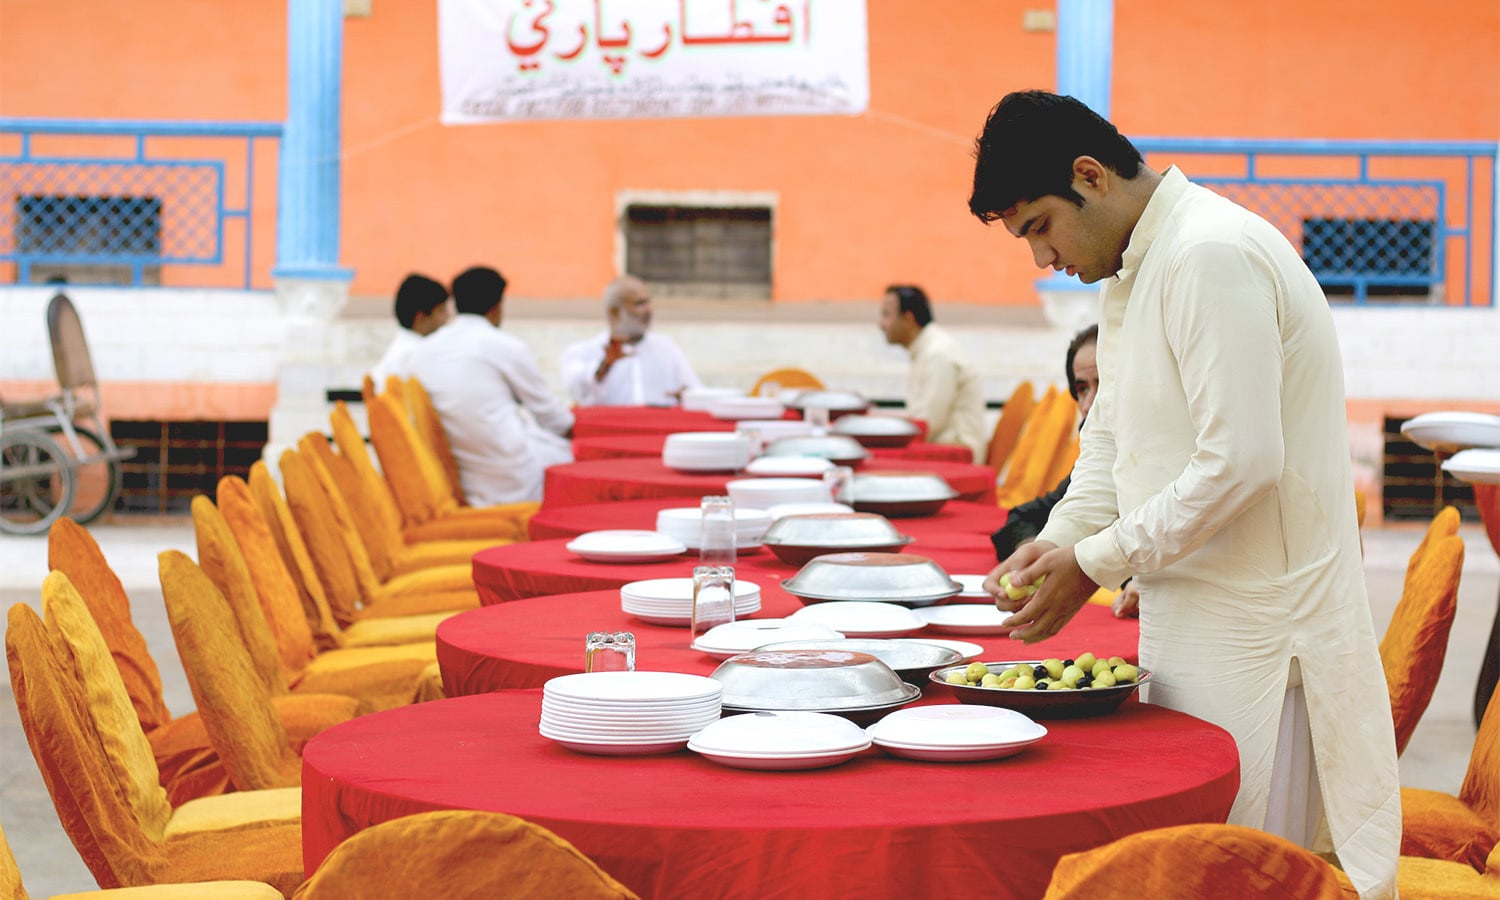 A young man lays the table for the guests for the evening's diverse Iftar party